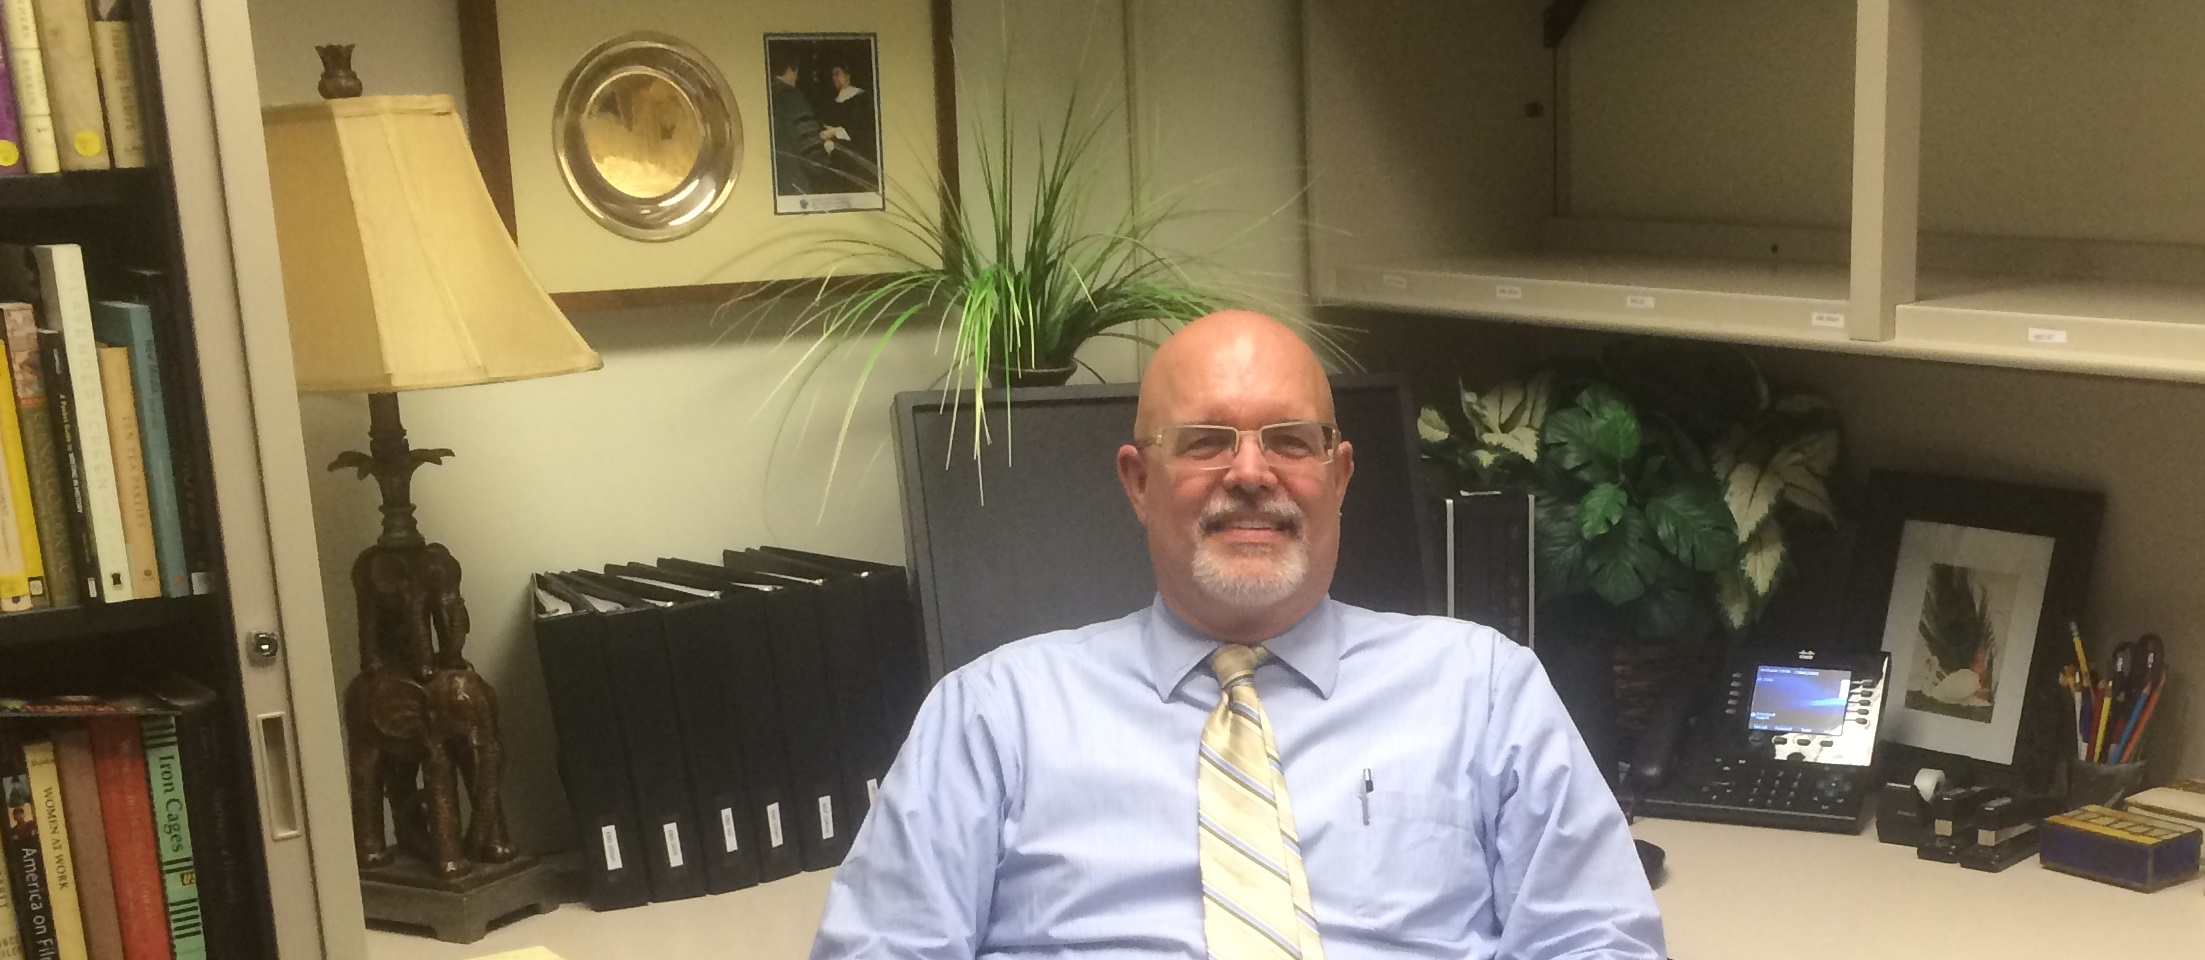 Dr. Berg sitting in his office on 23 June 2016.